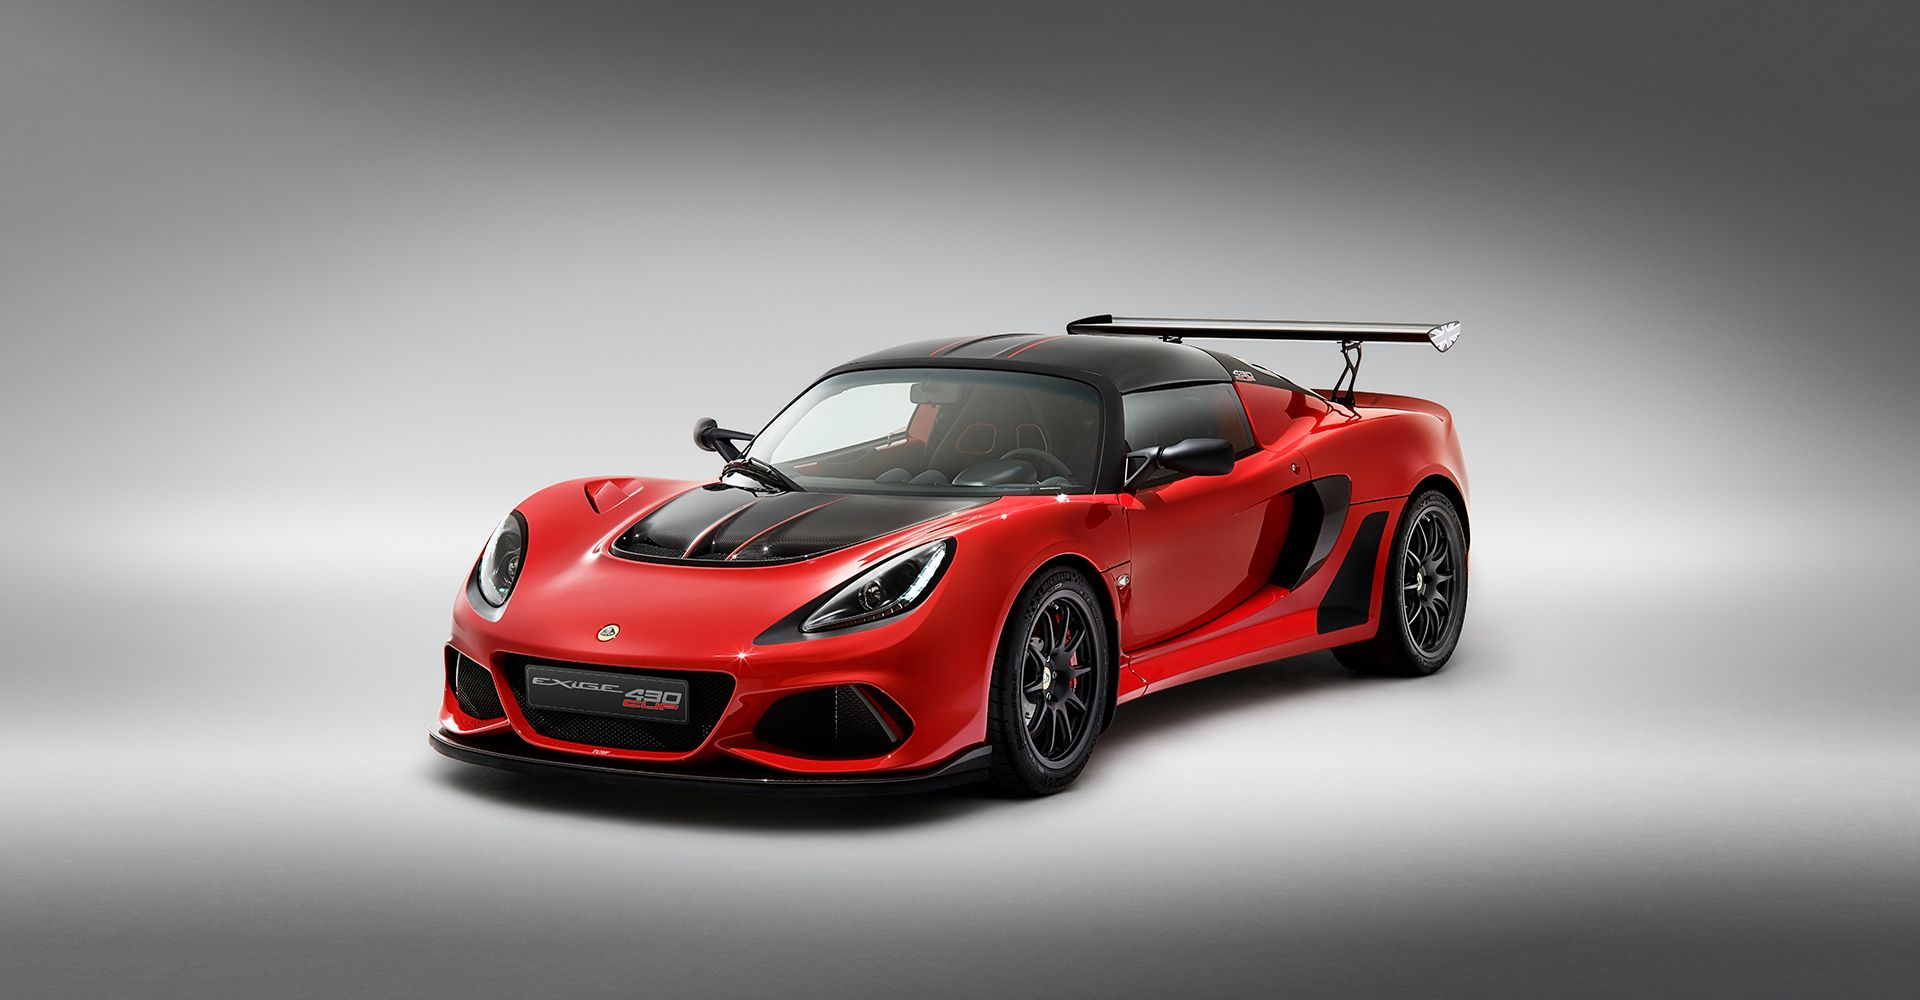 Exige Cup 430 Front Result - Central Lotus